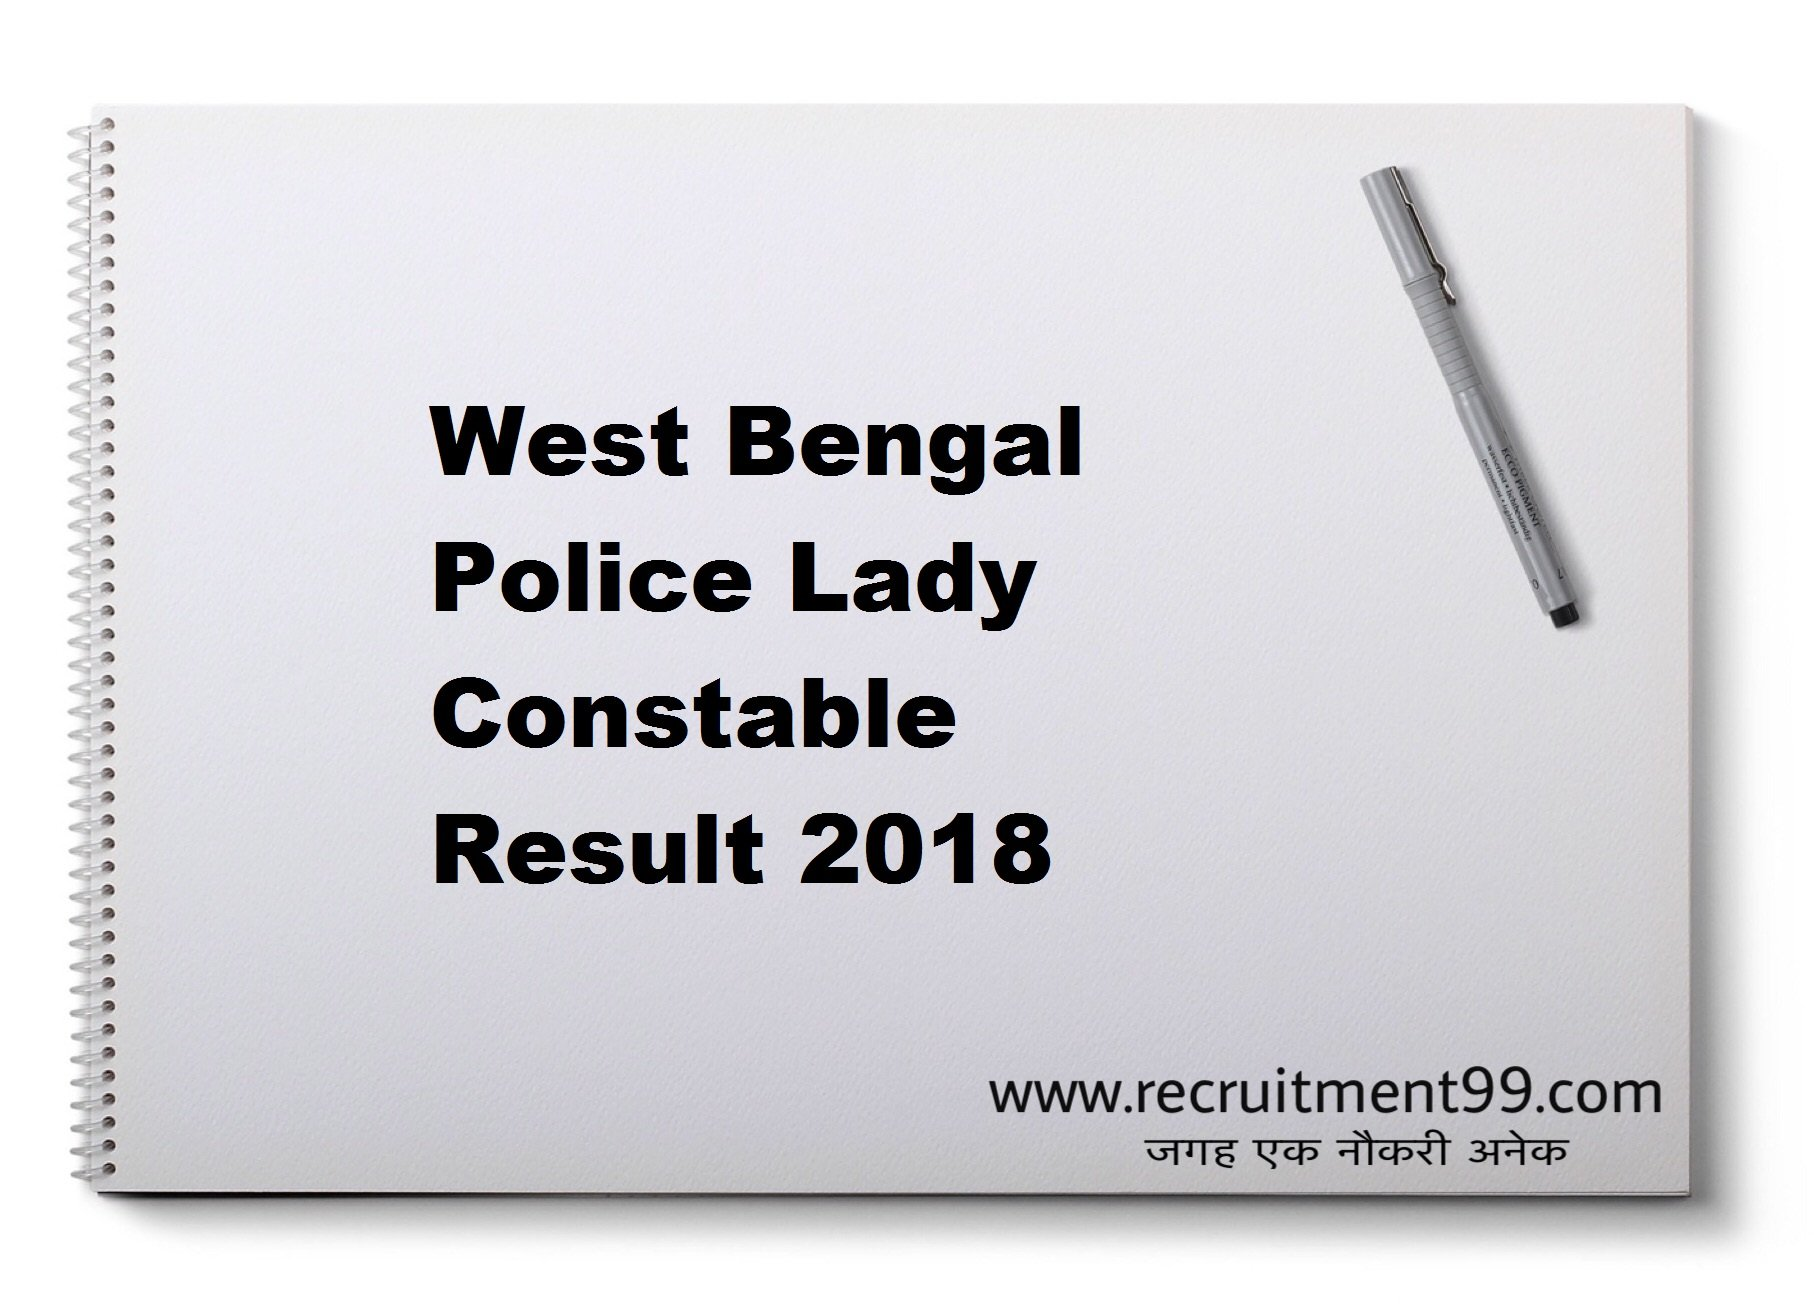 West Bengal Police Lady Constable Result 2018